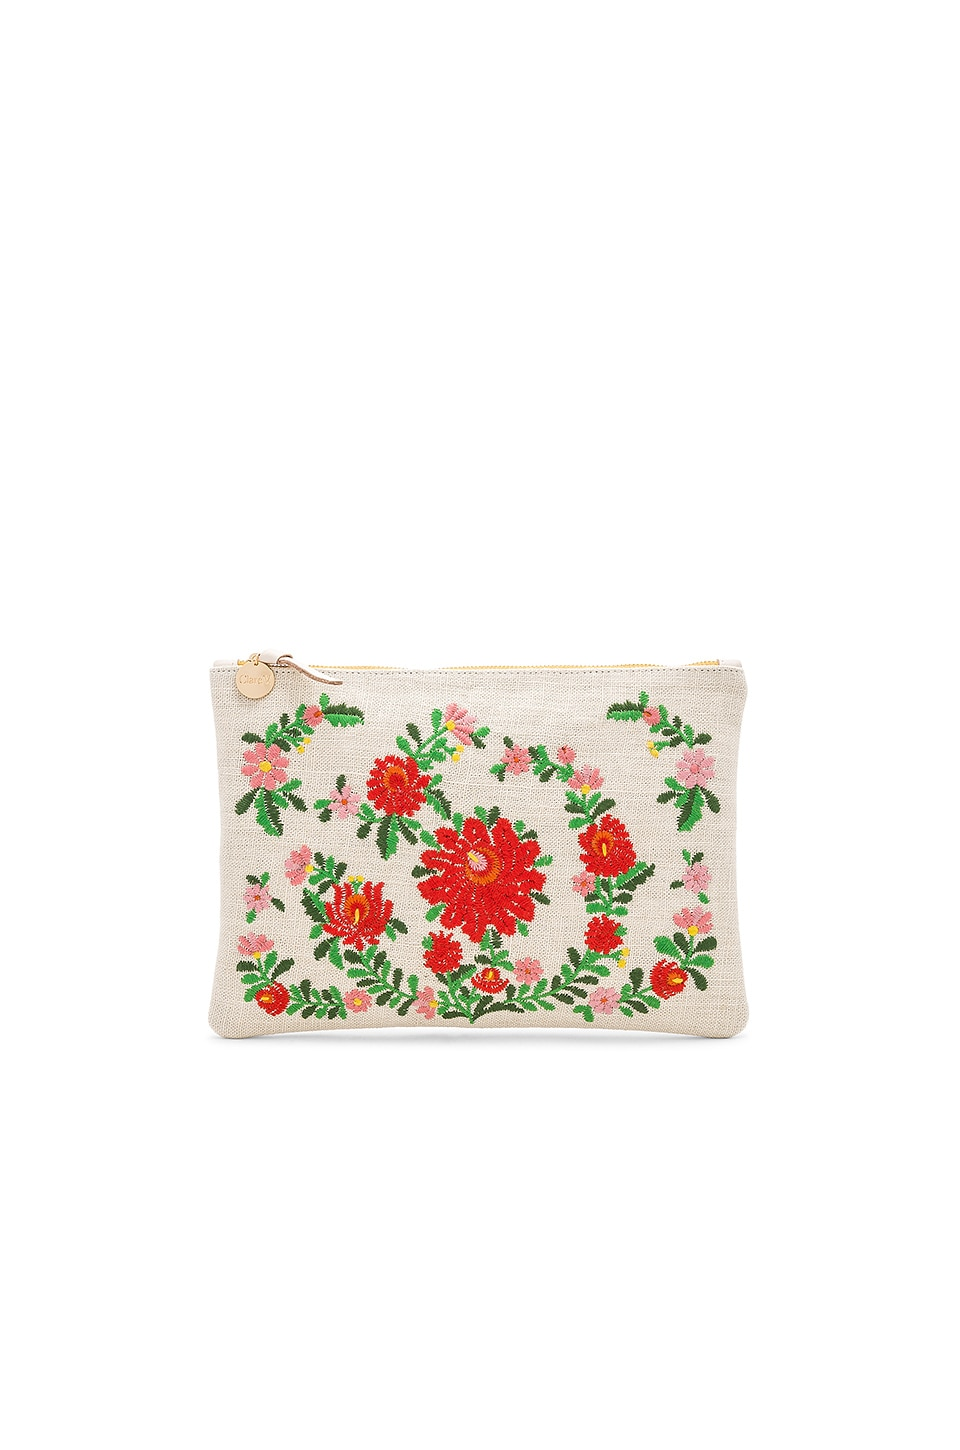 Clare V MEXICAN EMBROIDERED FLAT CLUTCH